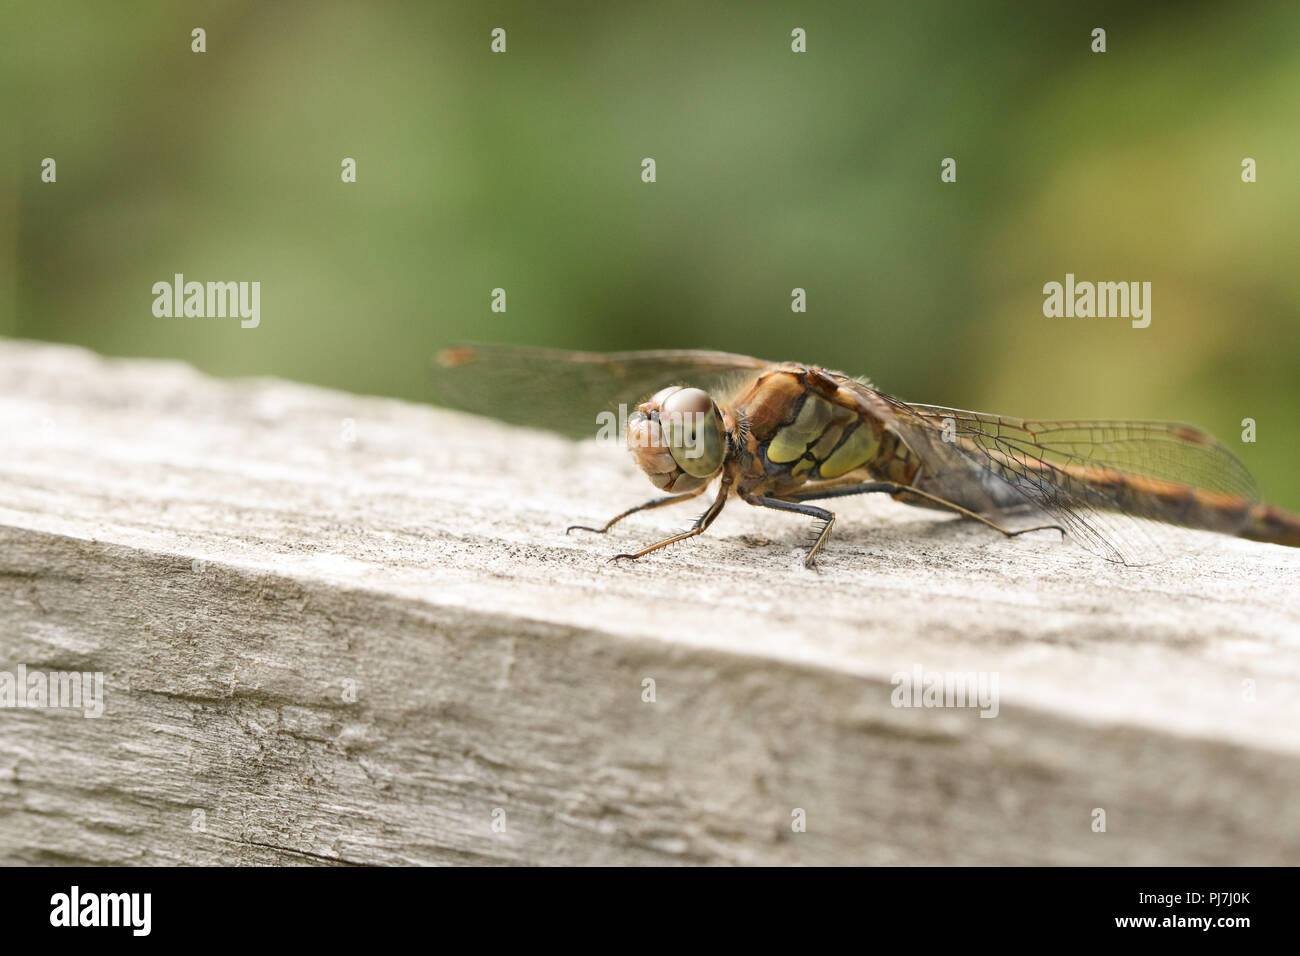 A hunting female Common Darter Dragonfly (Sympetrum striolatum) perched on a wooden fence. Stock Photo